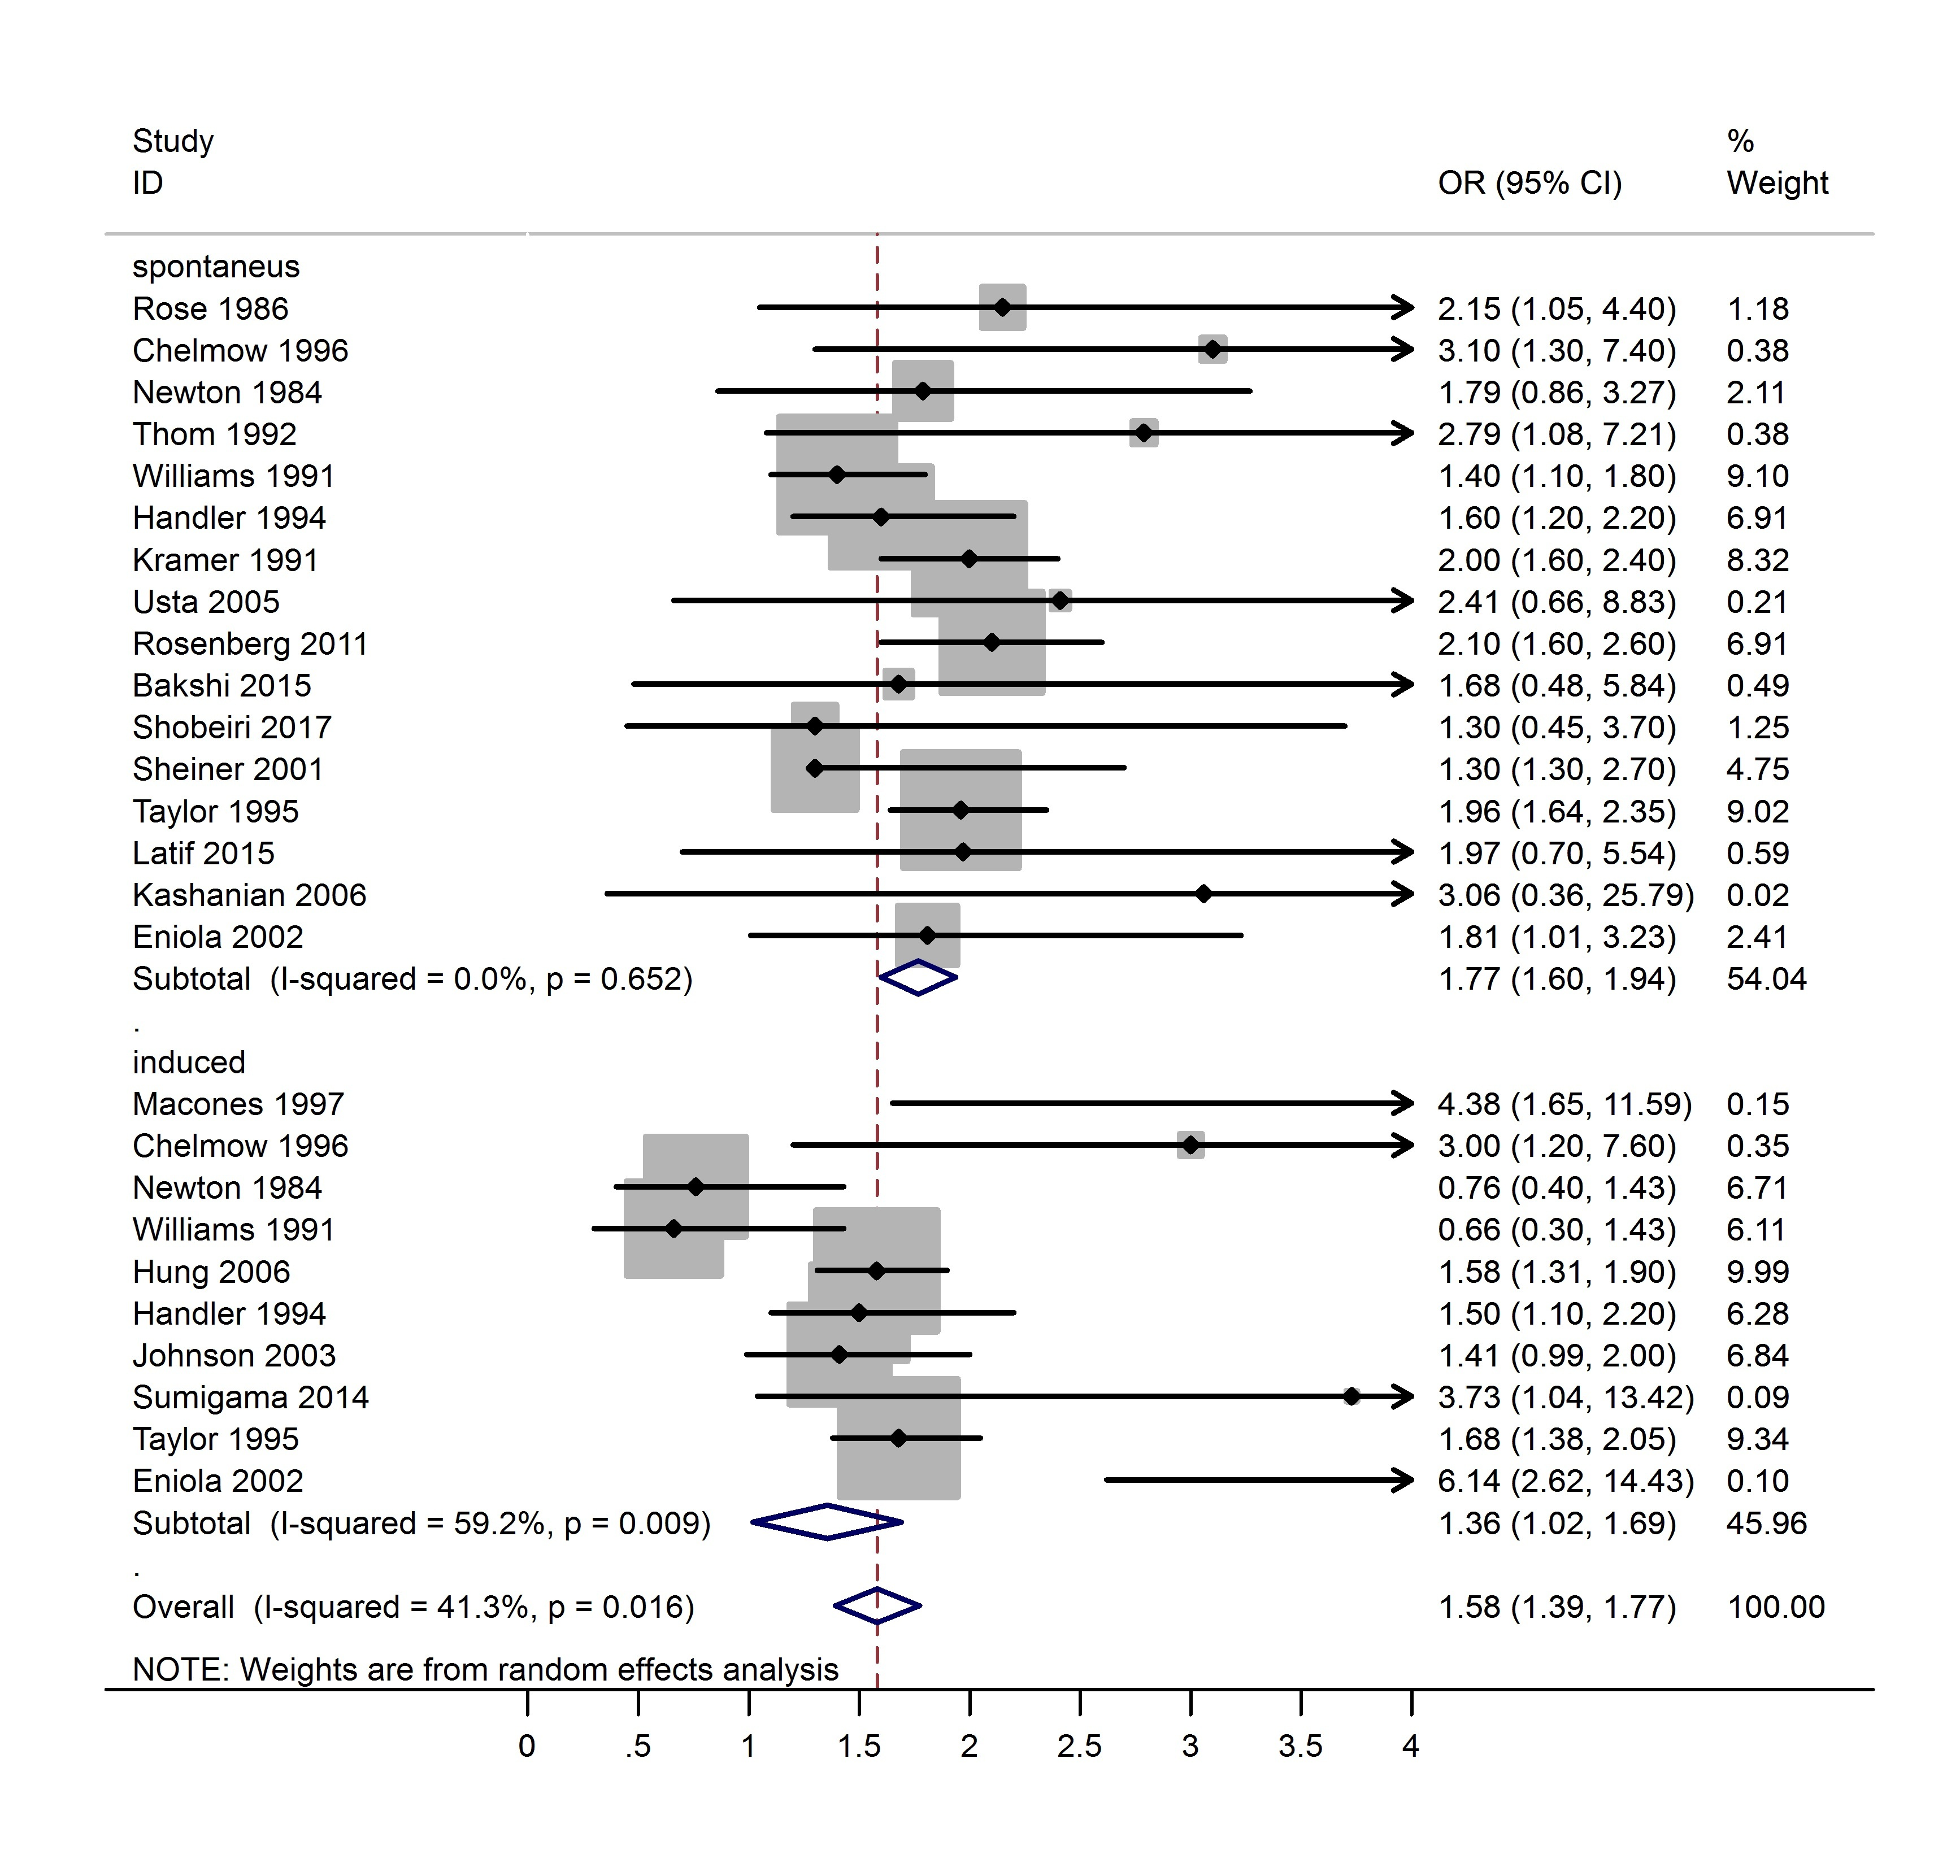 Placenta previa after prior abortion: a meta-analysis